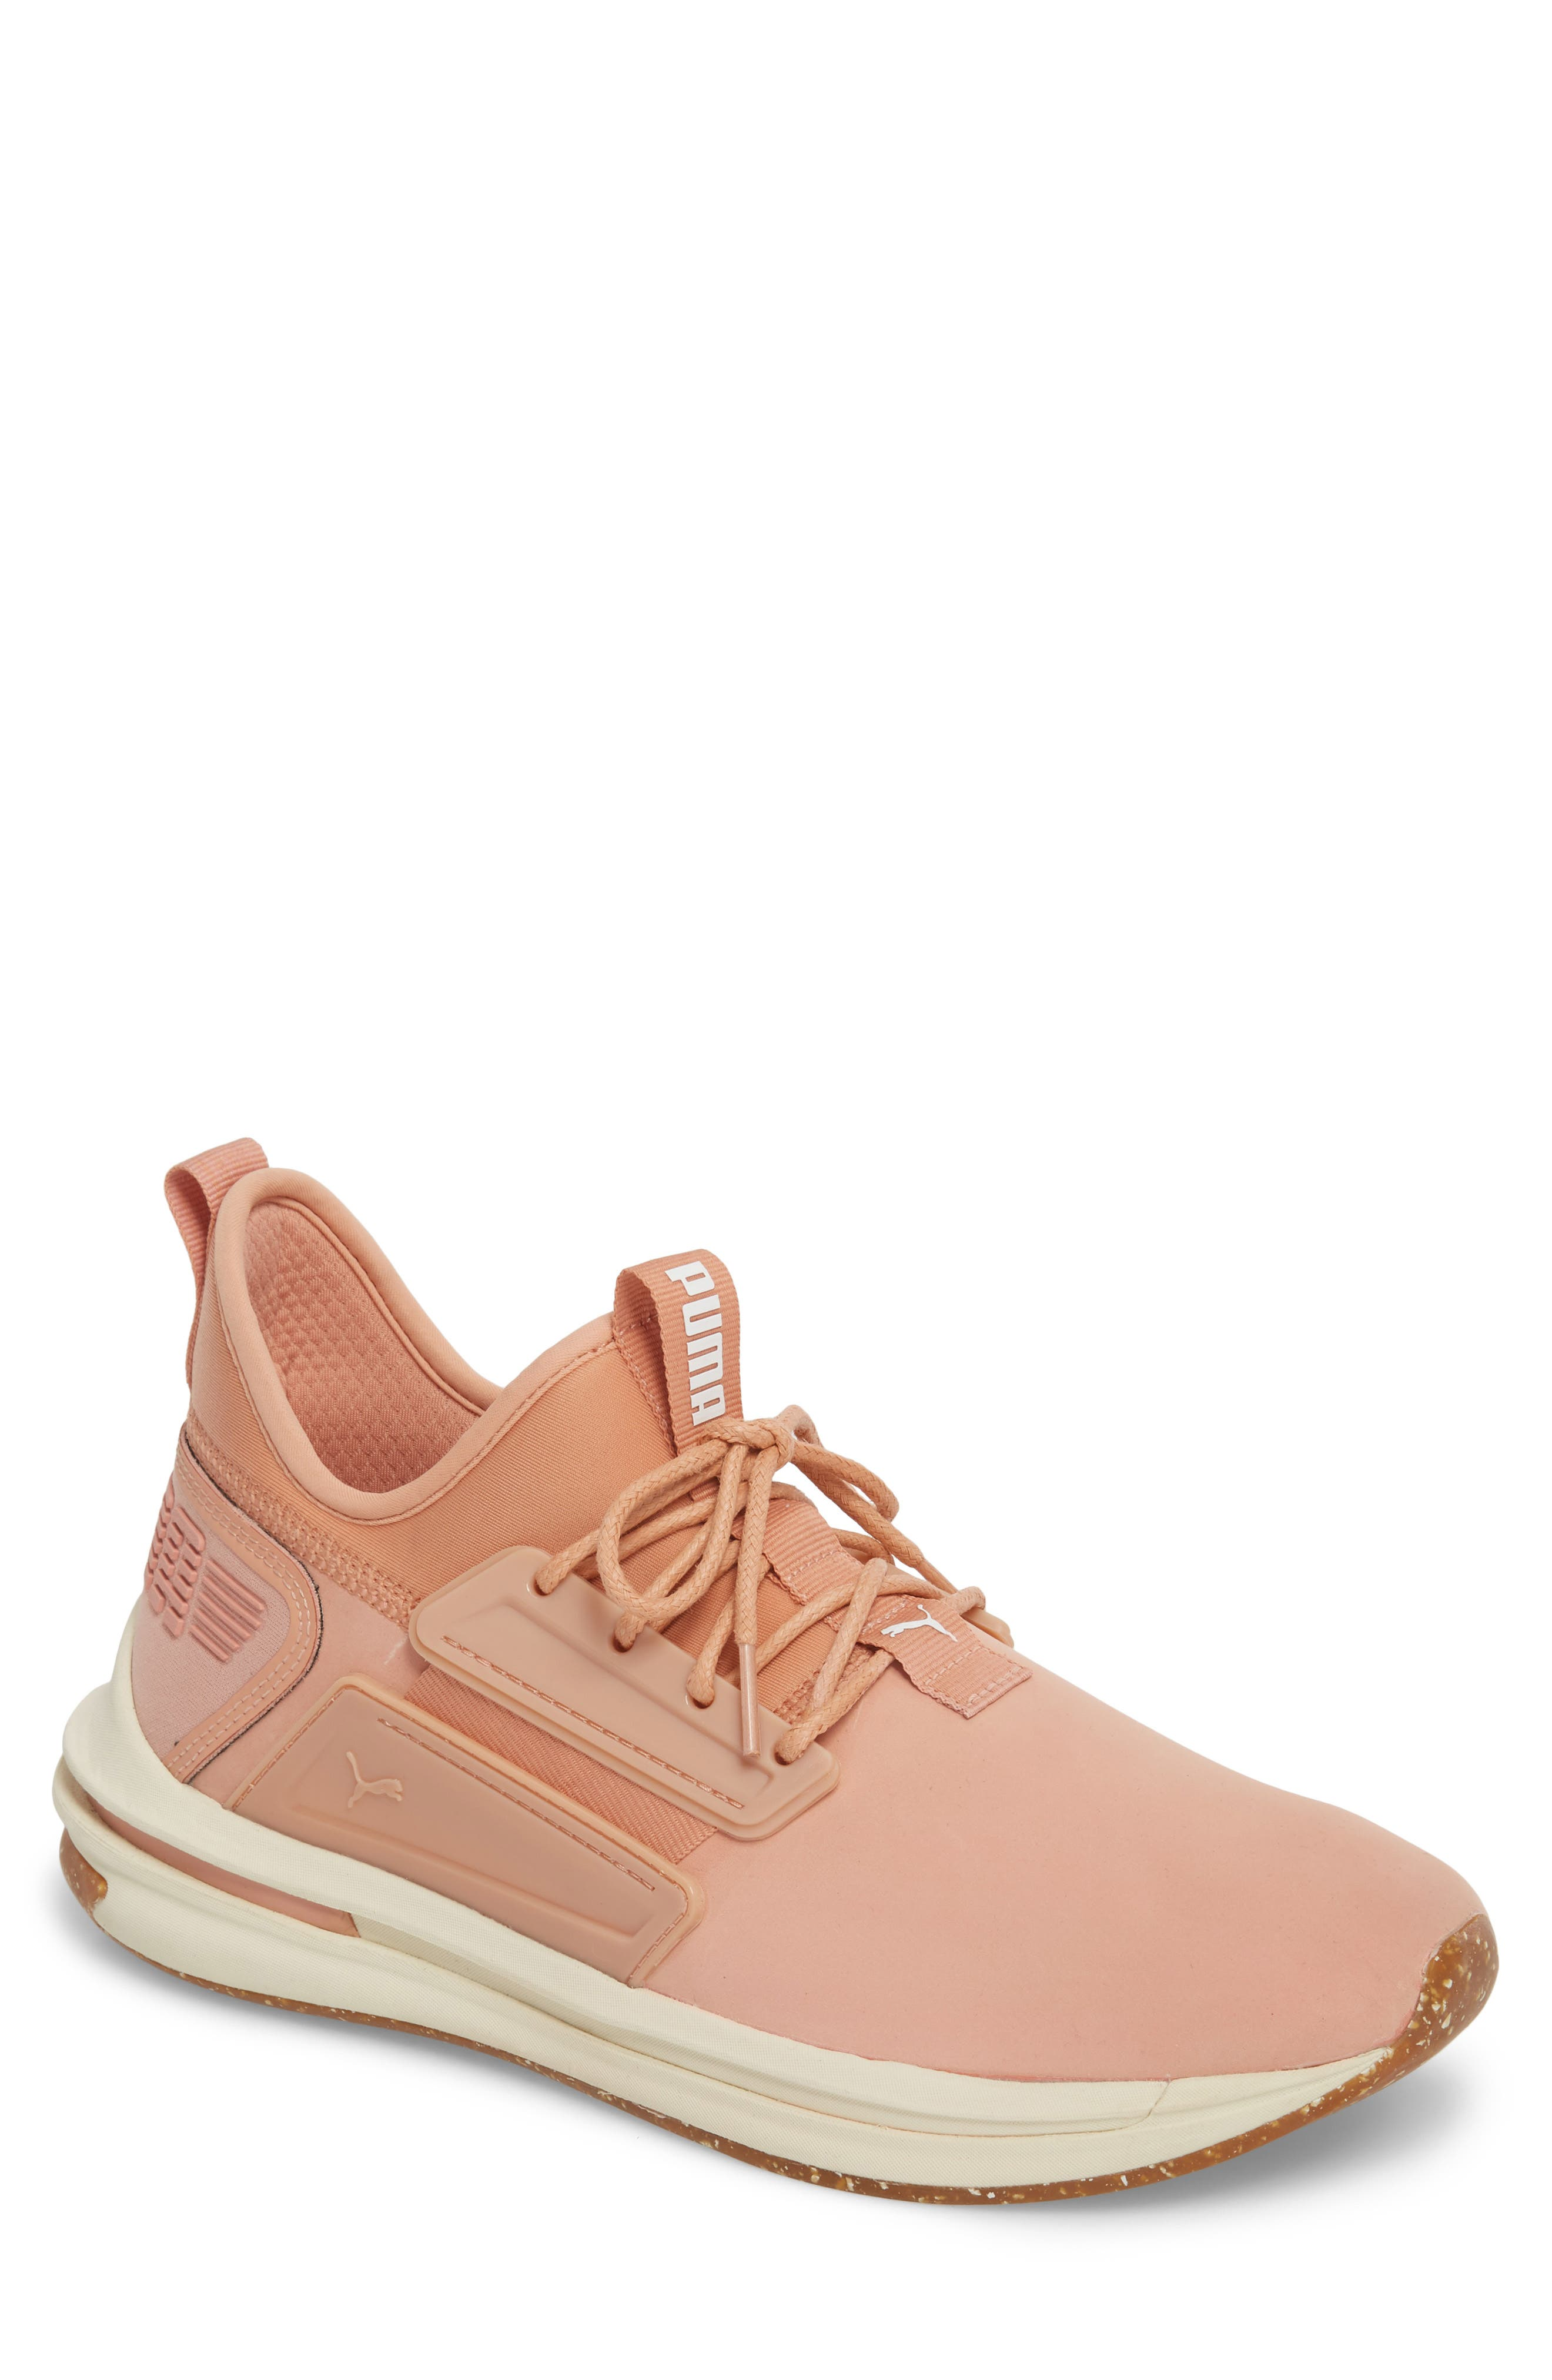 IGNITE Limitless SR Nature Sneaker,                         Main,                         color, Muted Clay Leather/ Suede